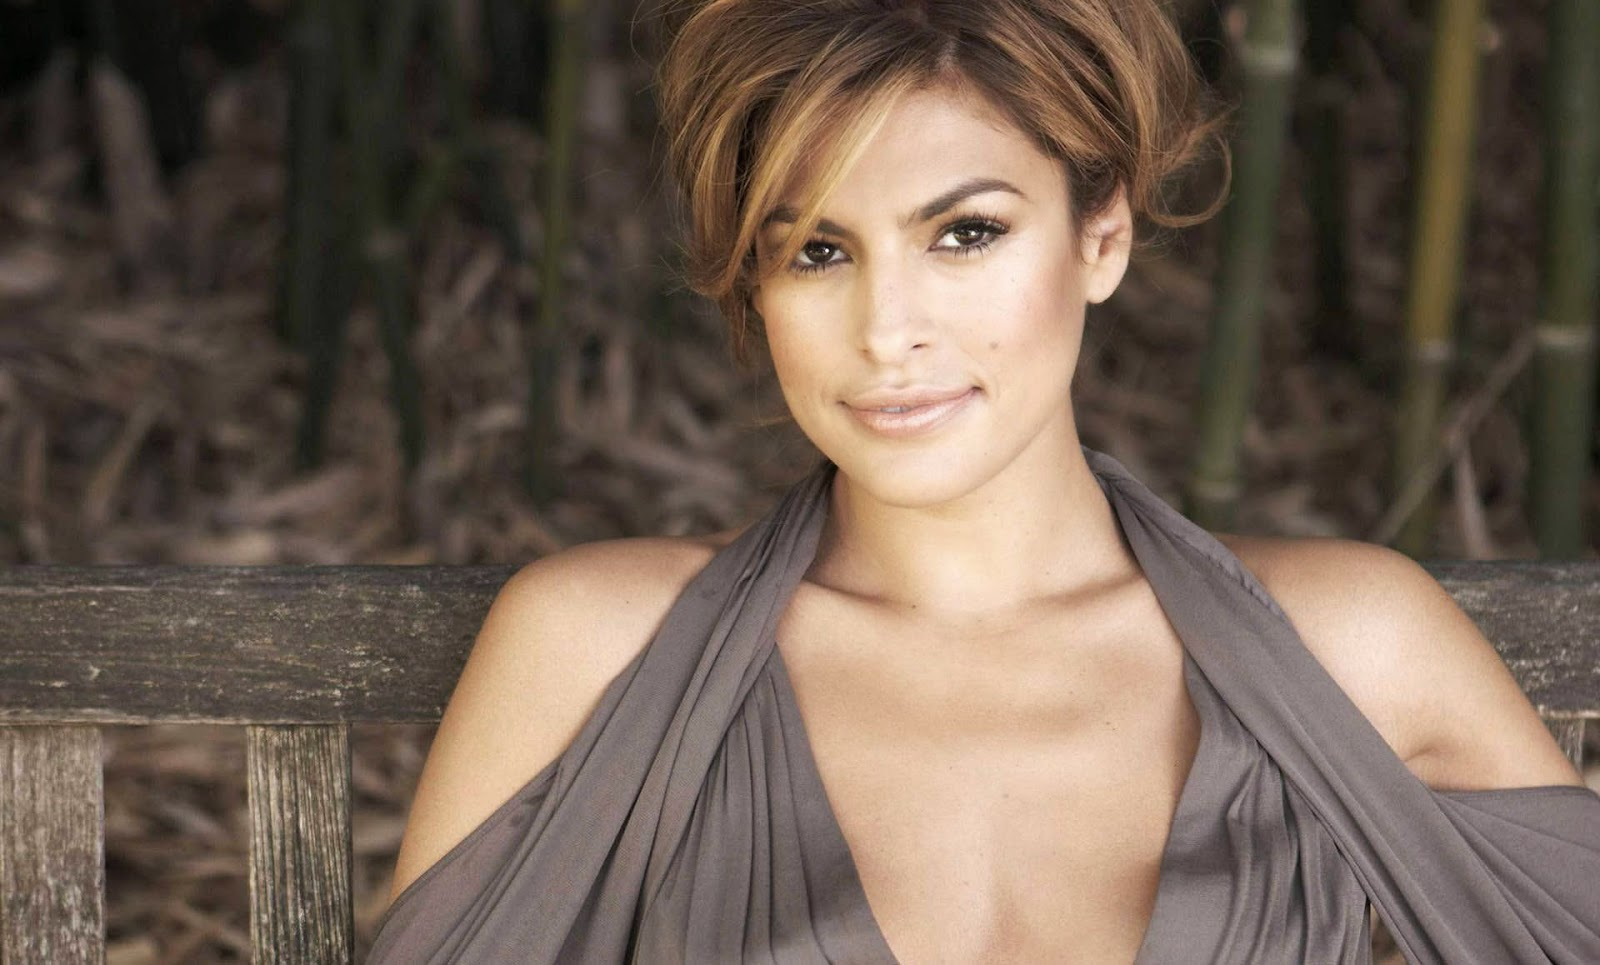 Eva mendes hottest latest wallpaper of actress